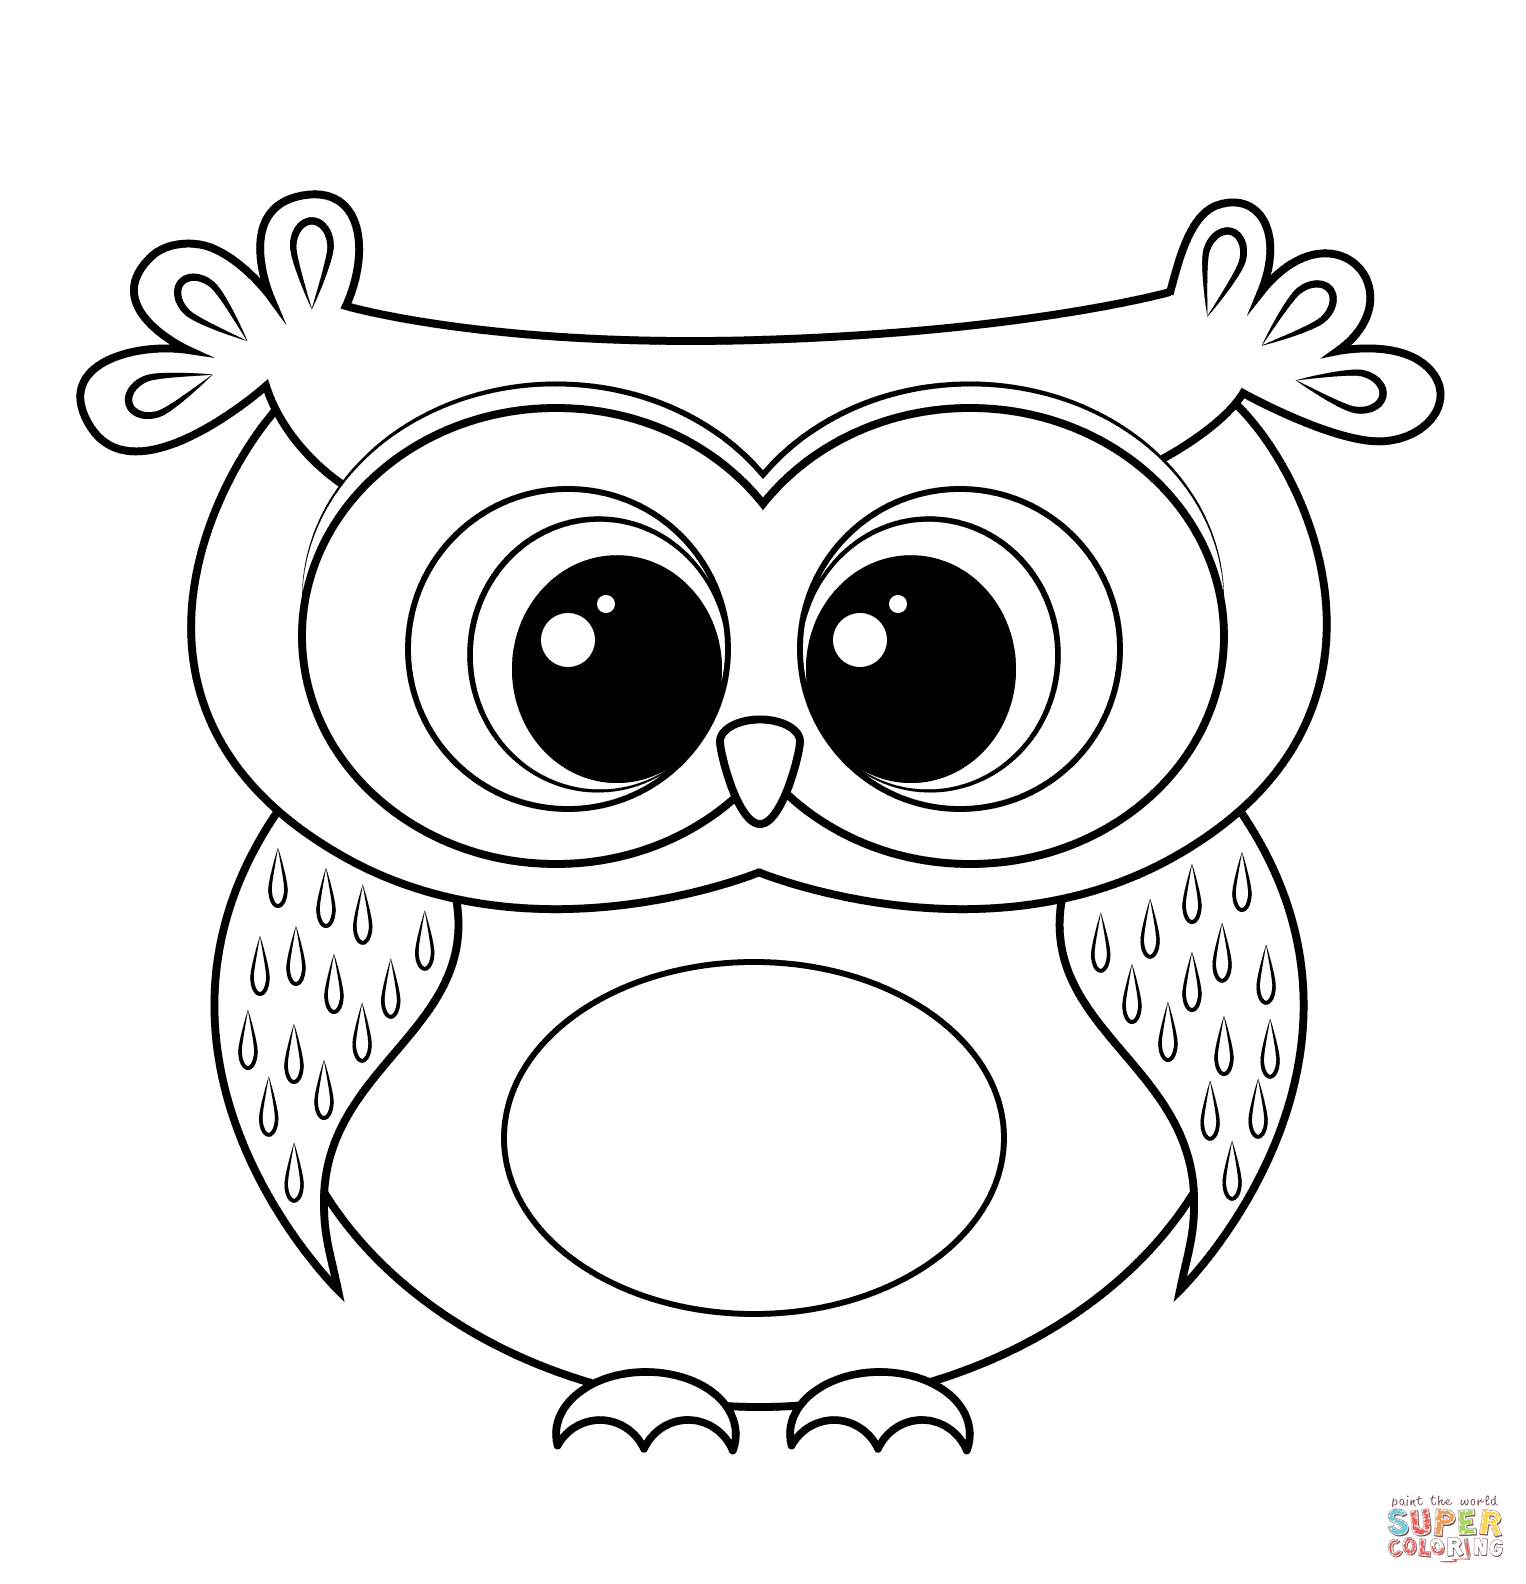 owl coloring pages to print cartoon owl coloring page free printable coloring pages pages coloring print owl to